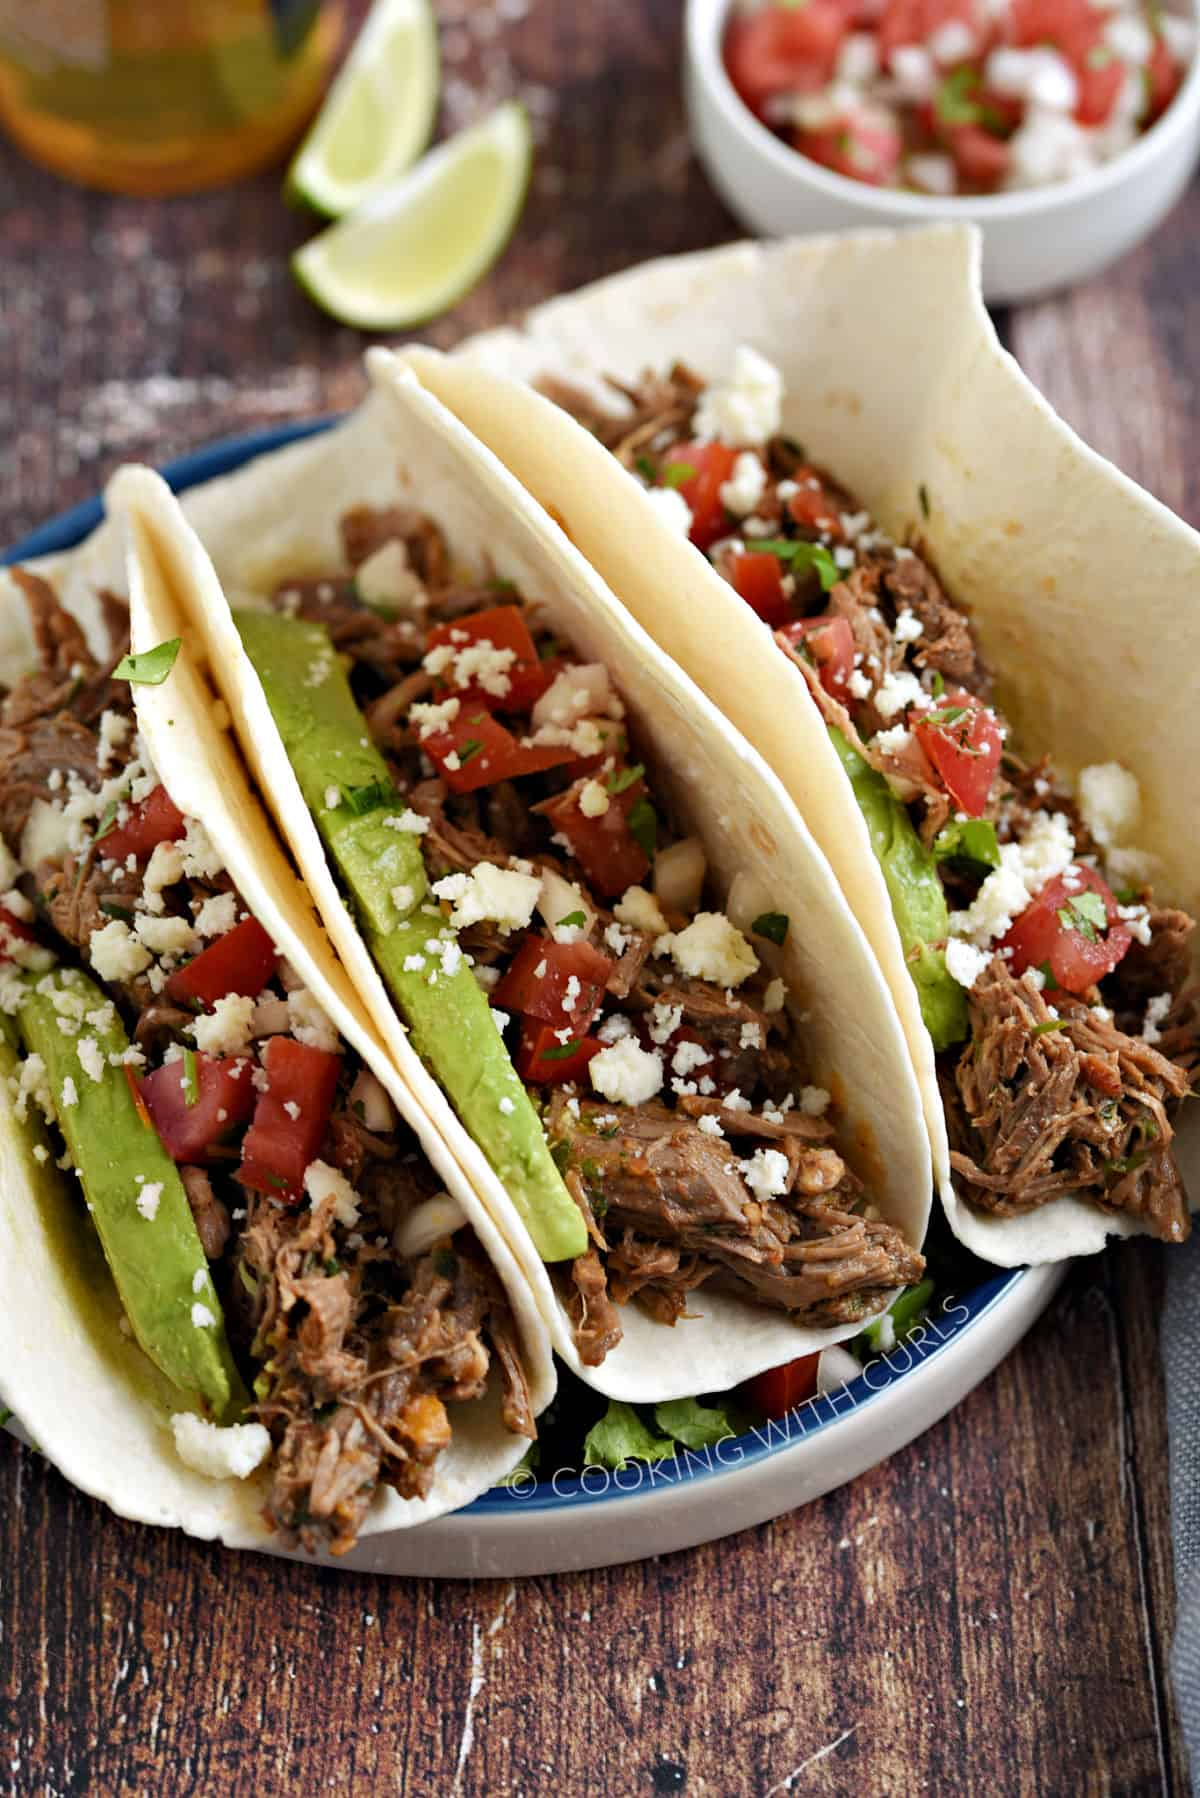 Three Mexican Shredded Beef soft tacos topped with crumbled queso, diced tomatoes and onion, and avocado slices with a bowl of pico and two limes in the background.